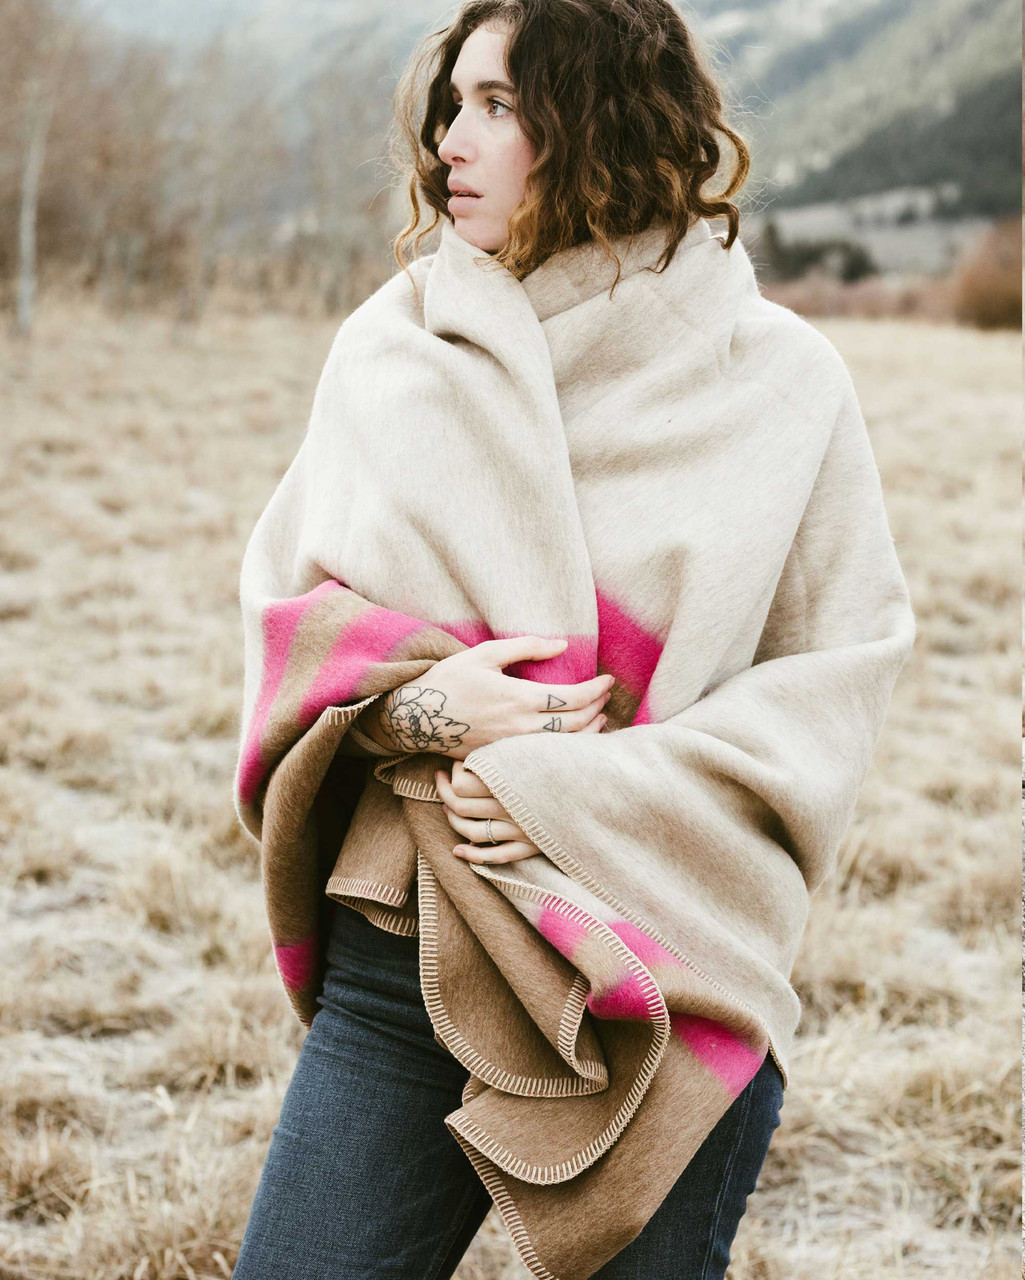 Alicia Adams Alpaca Aspen Cape, alpaca poncho cape for women, alpaca poncho womens, alpaca wrap, light taupe, tobacco and shocking pink alpaca cape